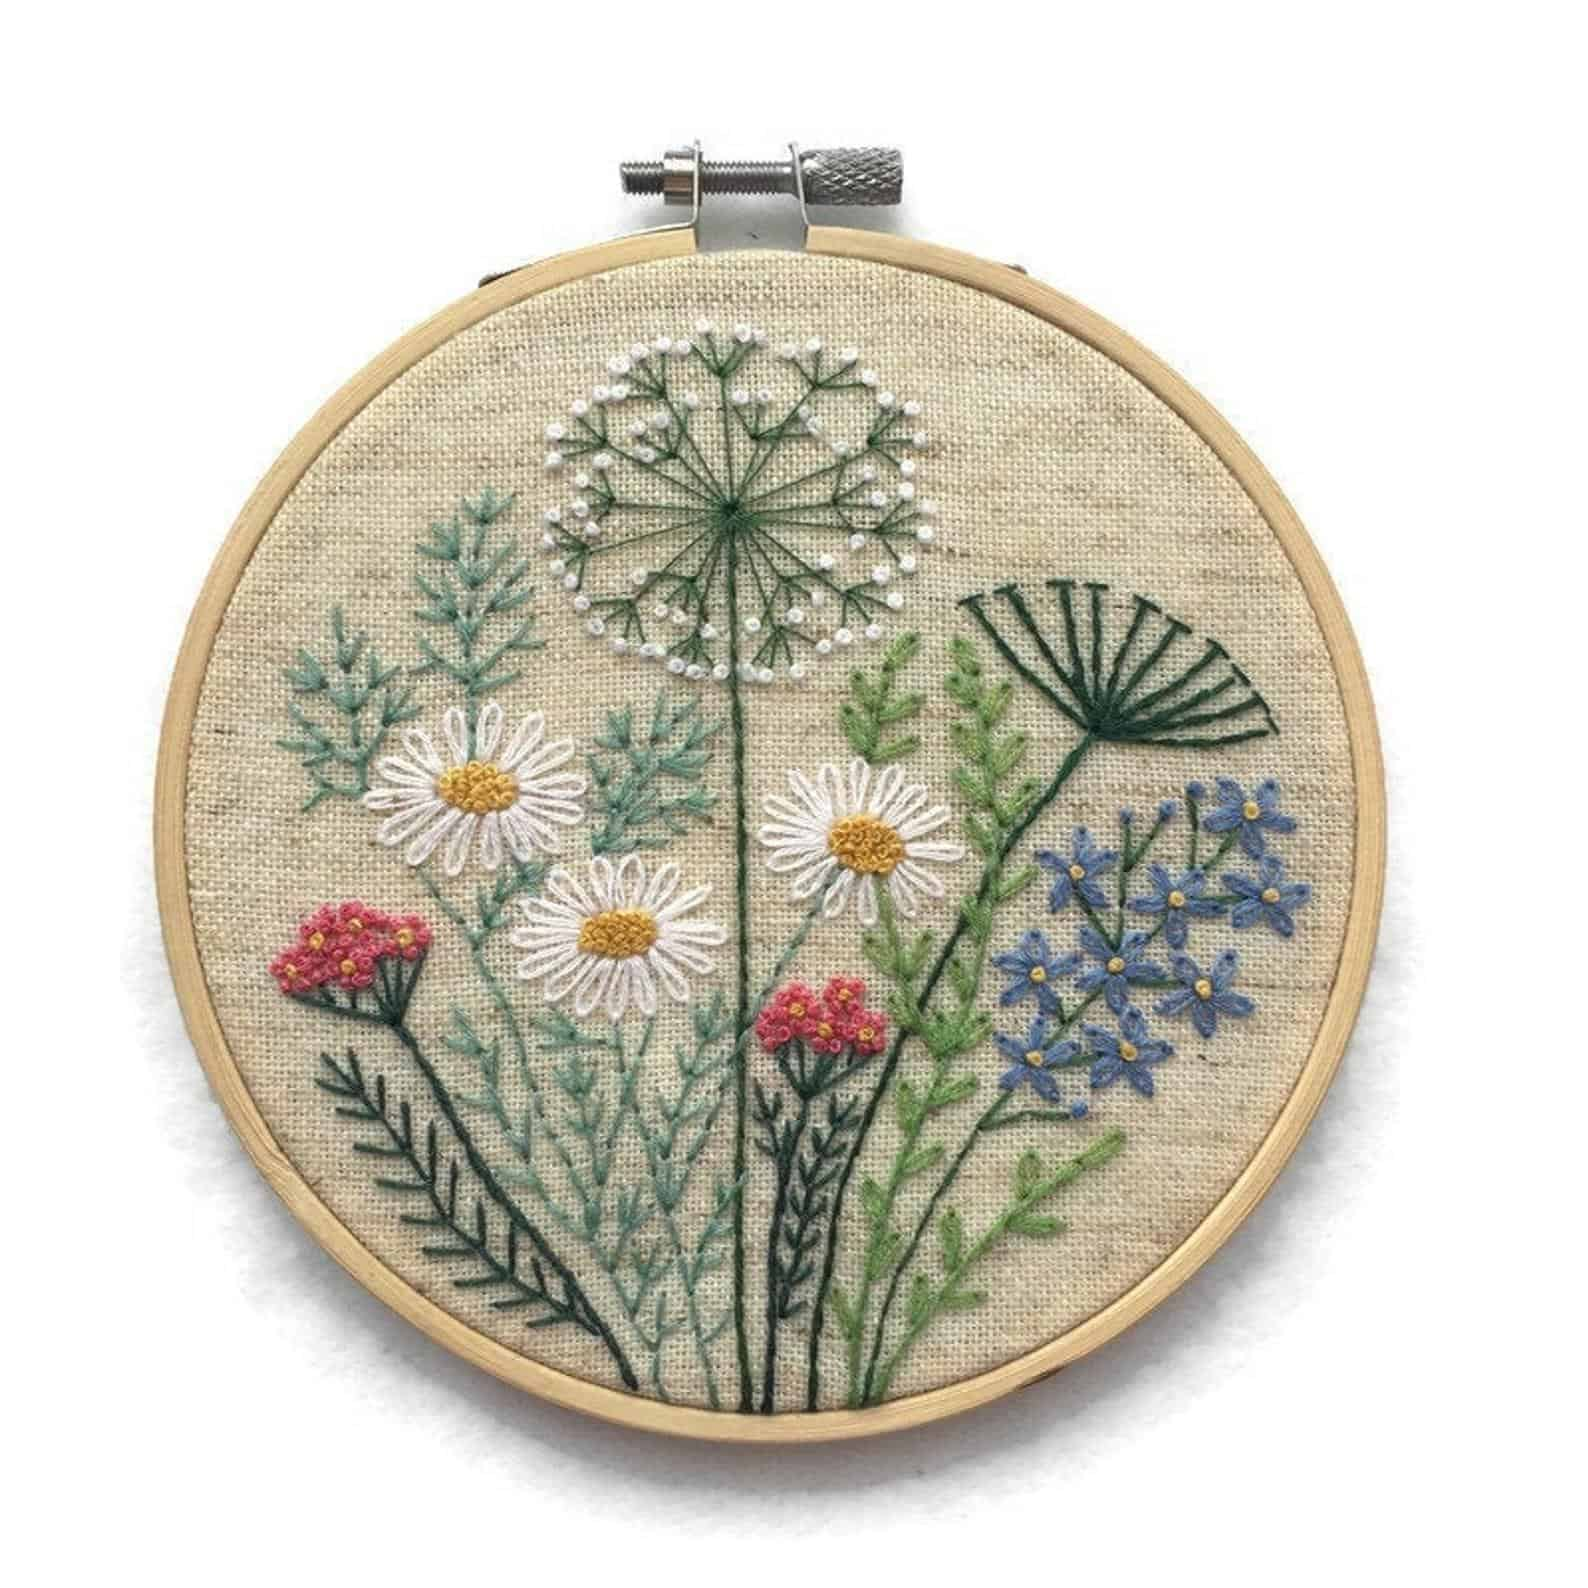 Embroidery of creative flowers and herbs